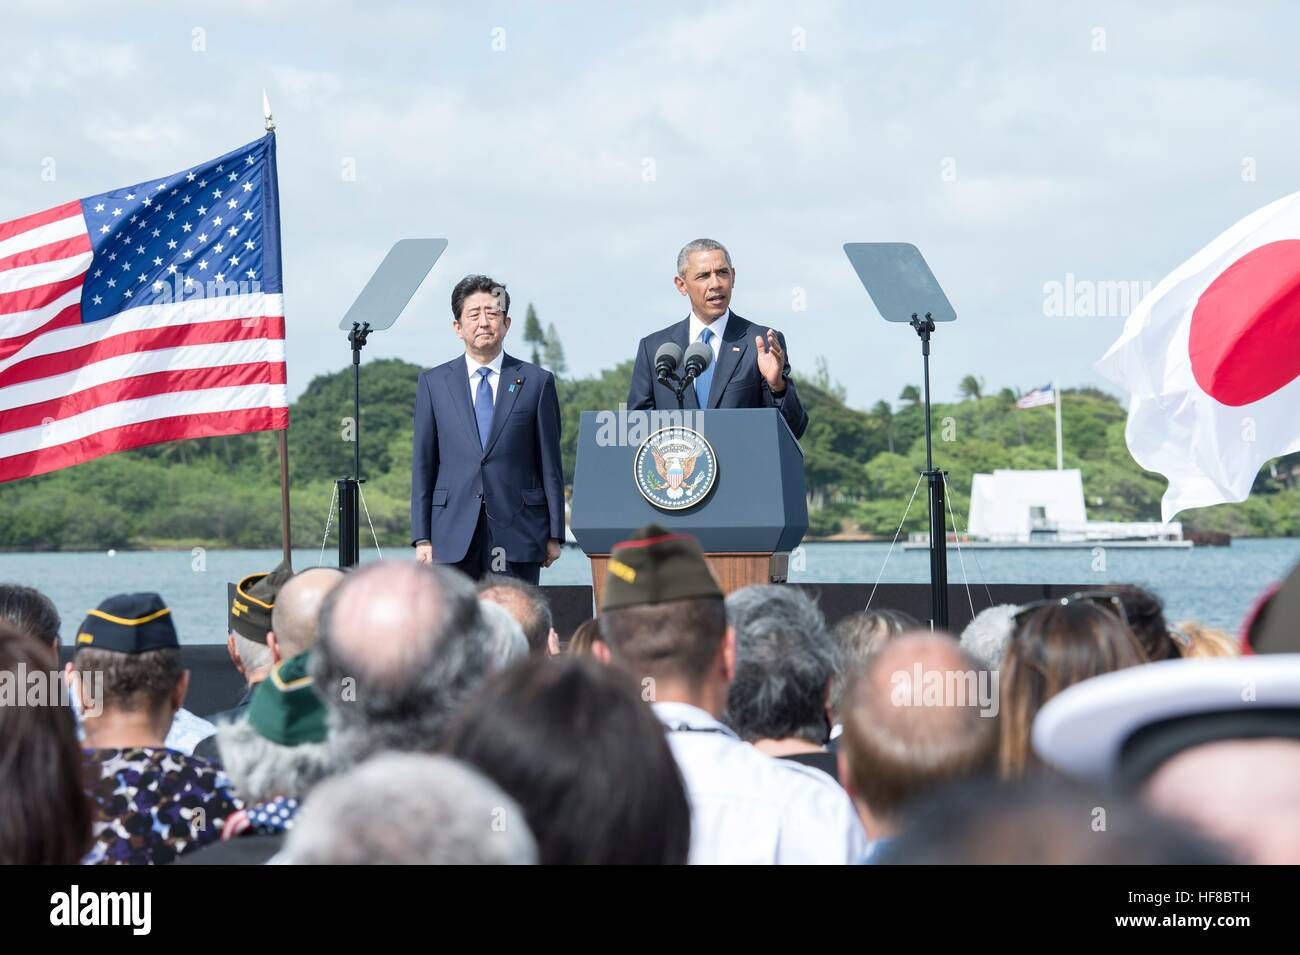 Pearl Harbour, Hawaii. 27th Dec, 2016. U.S President Barack Obama and Japanese Prime Minister Shinzo Abe deliver - Stock Image